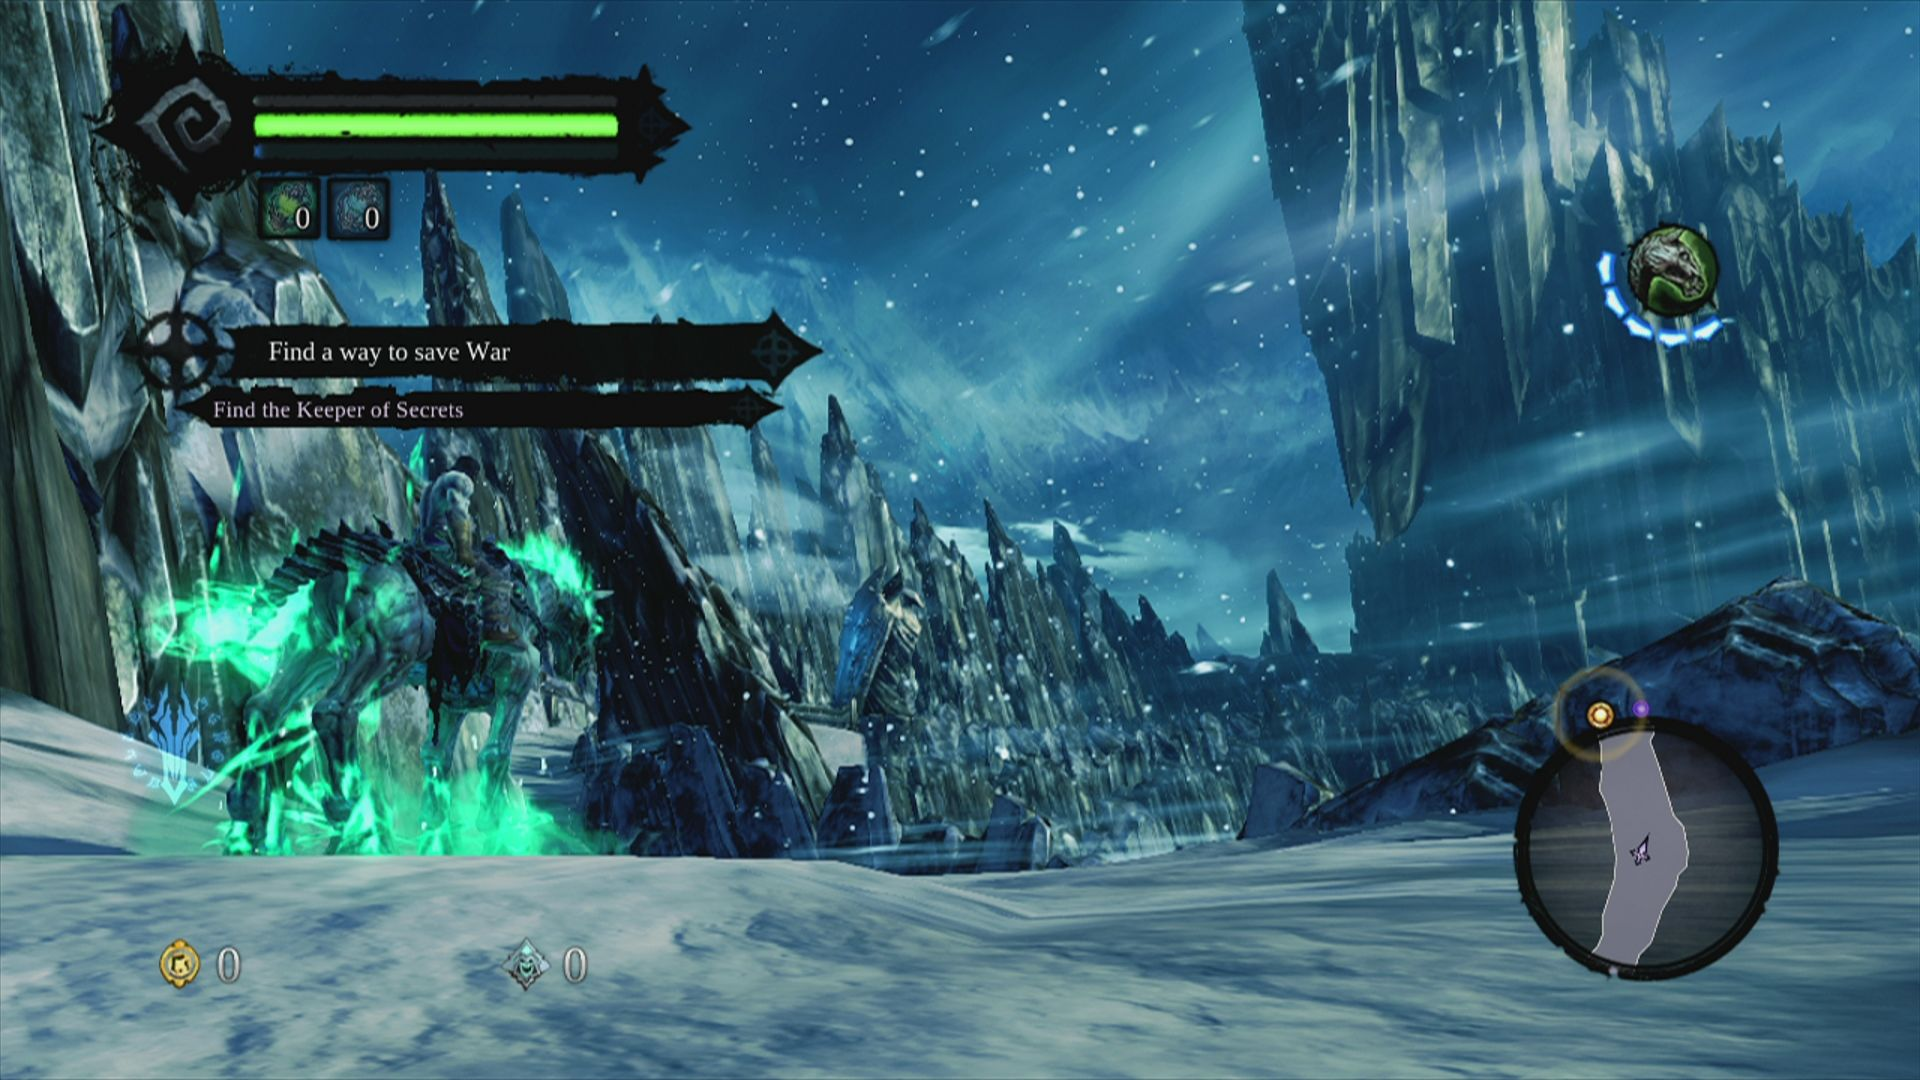 Darksiders II Xbox 360 The prologue also acts as a tutorial